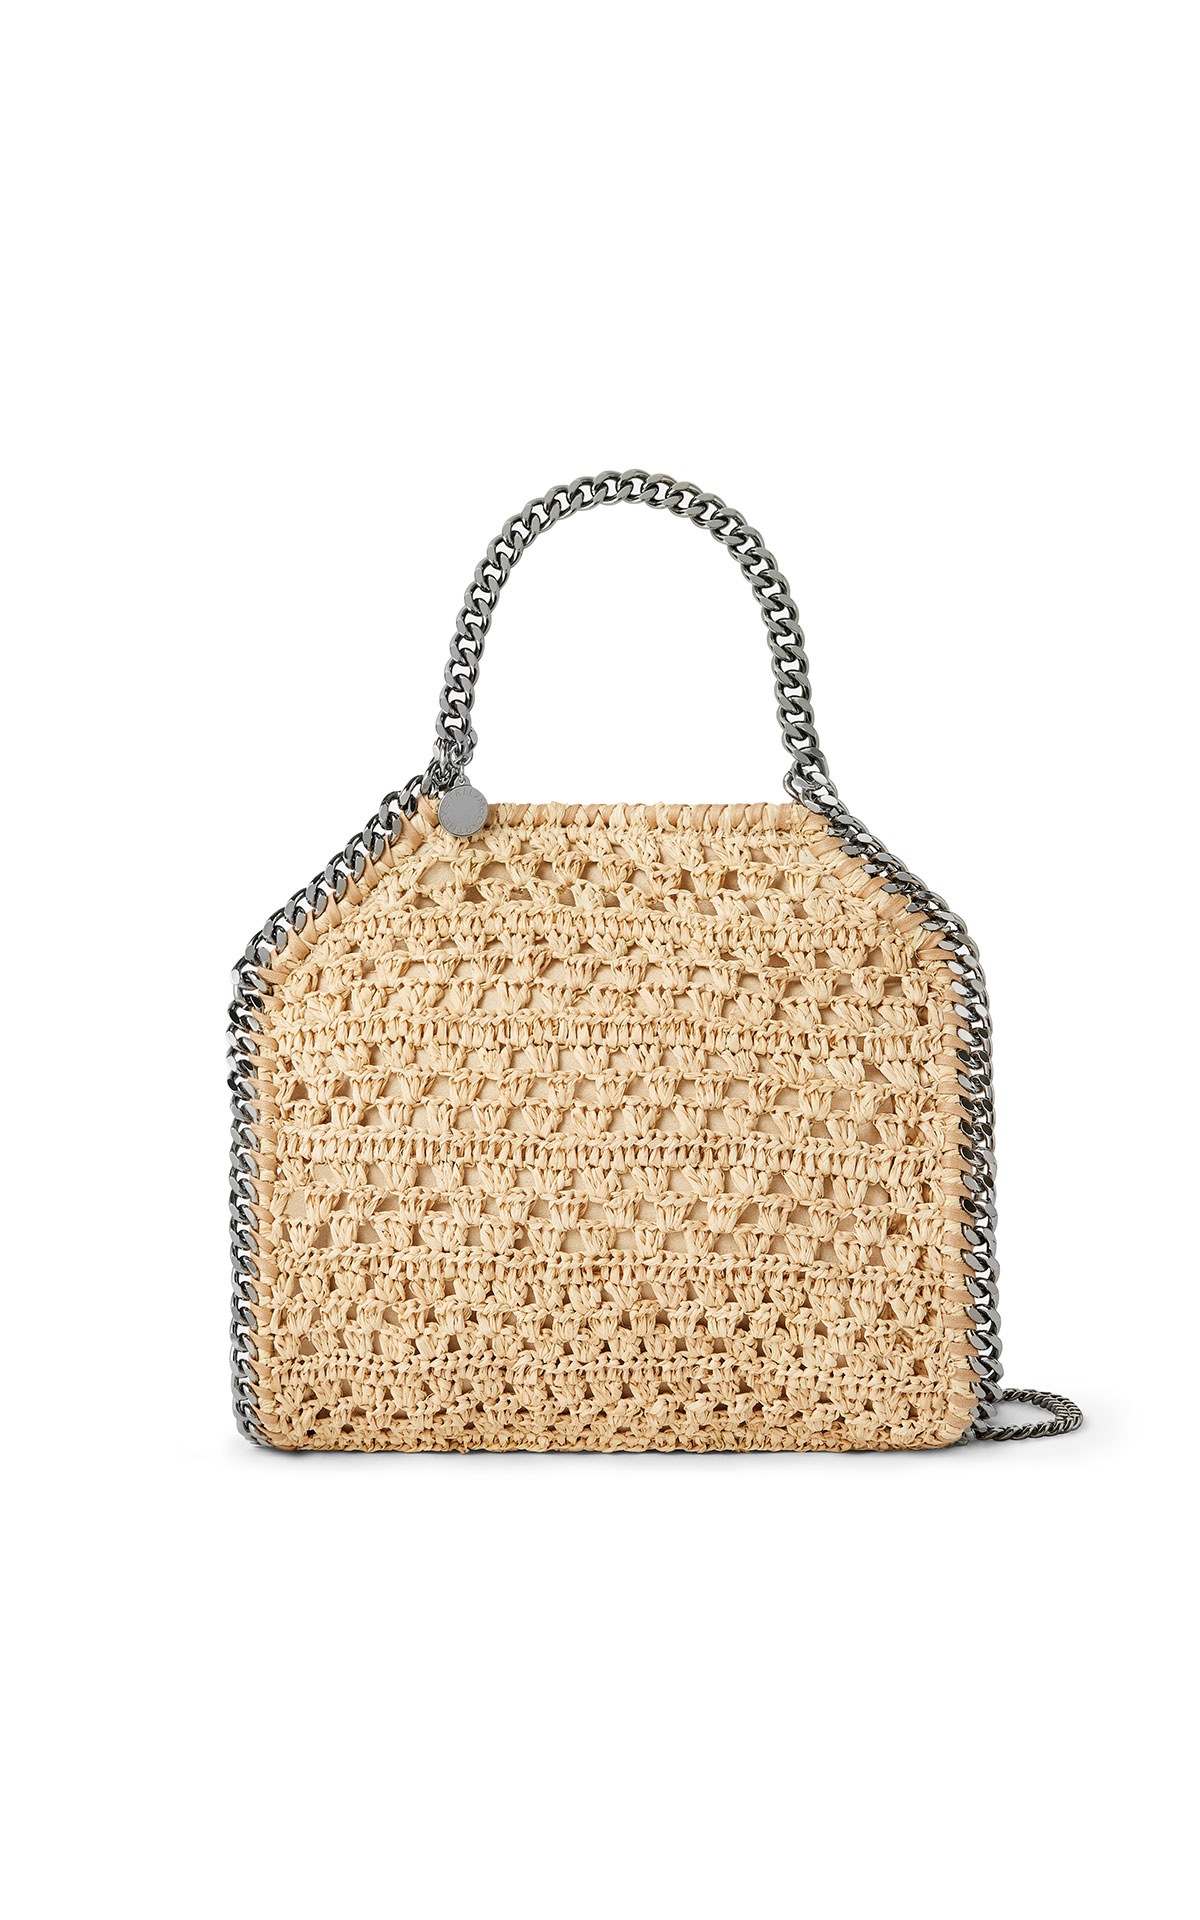 Stella McCartney Falabella tote bag from Bicester Village